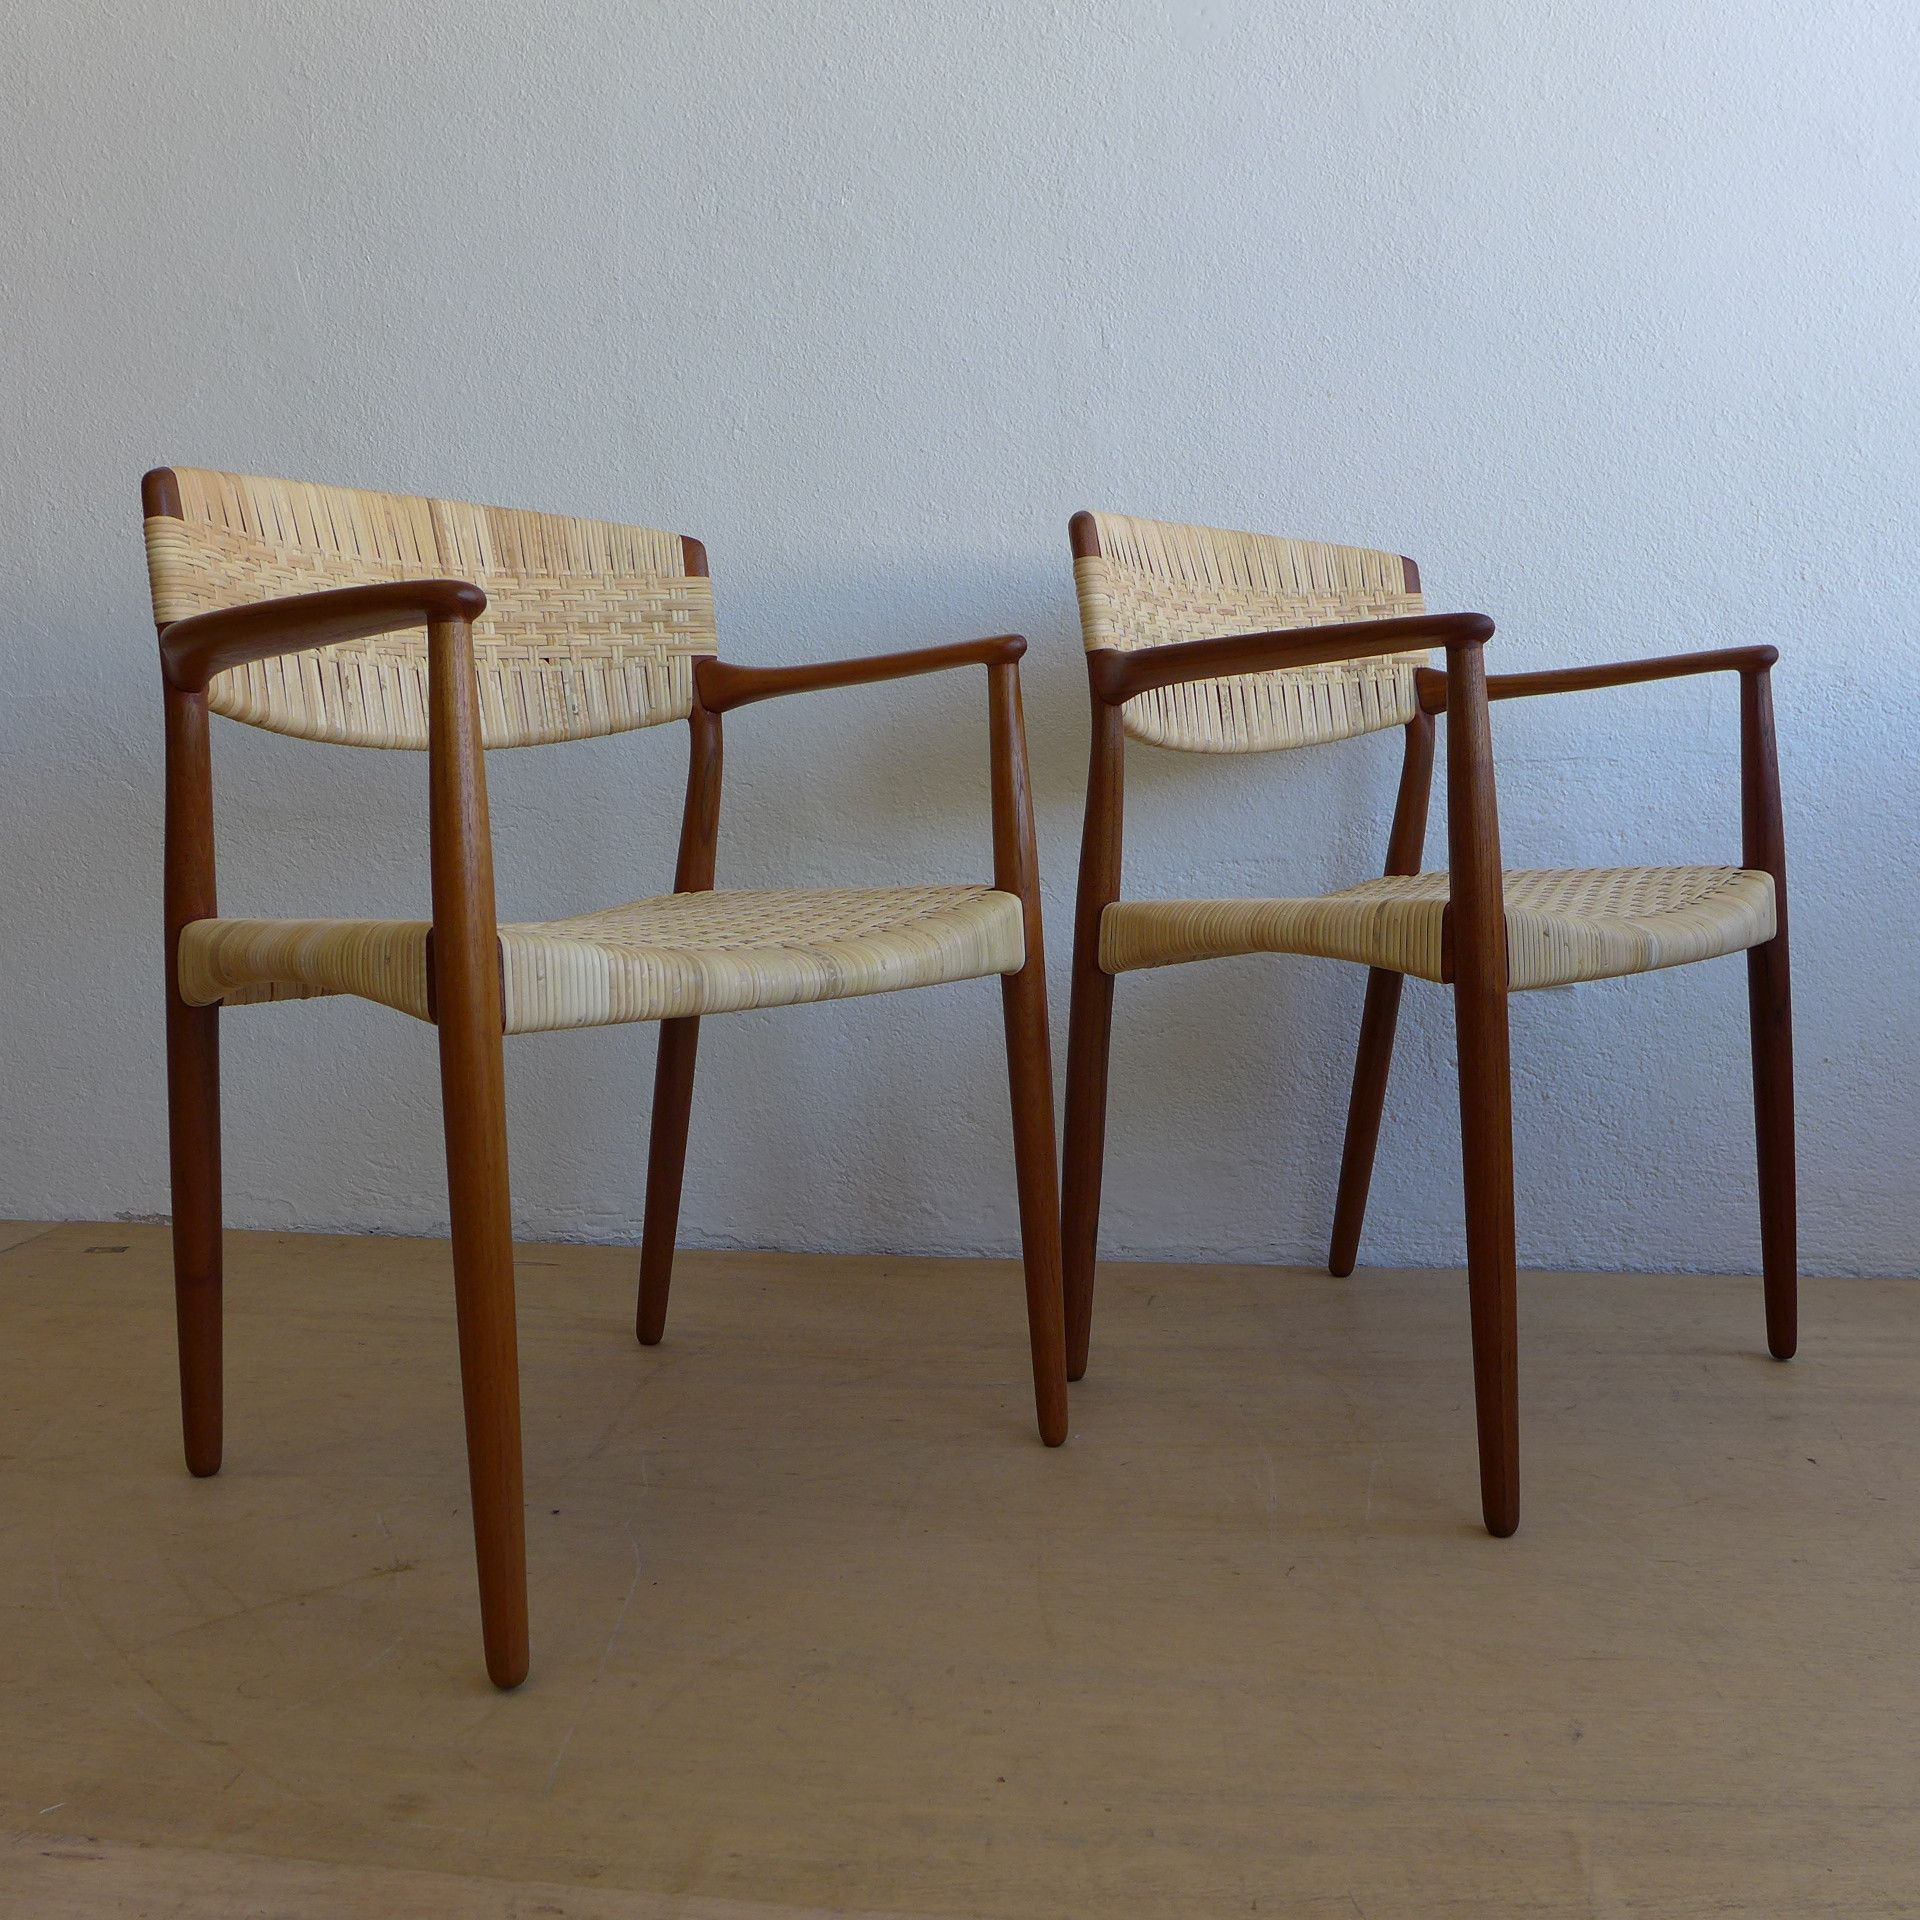 Madsen & Larsen Teak Cane Captain Dining Arm Chairs  Organic Glamorous Captain Chairs For Dining Room Inspiration